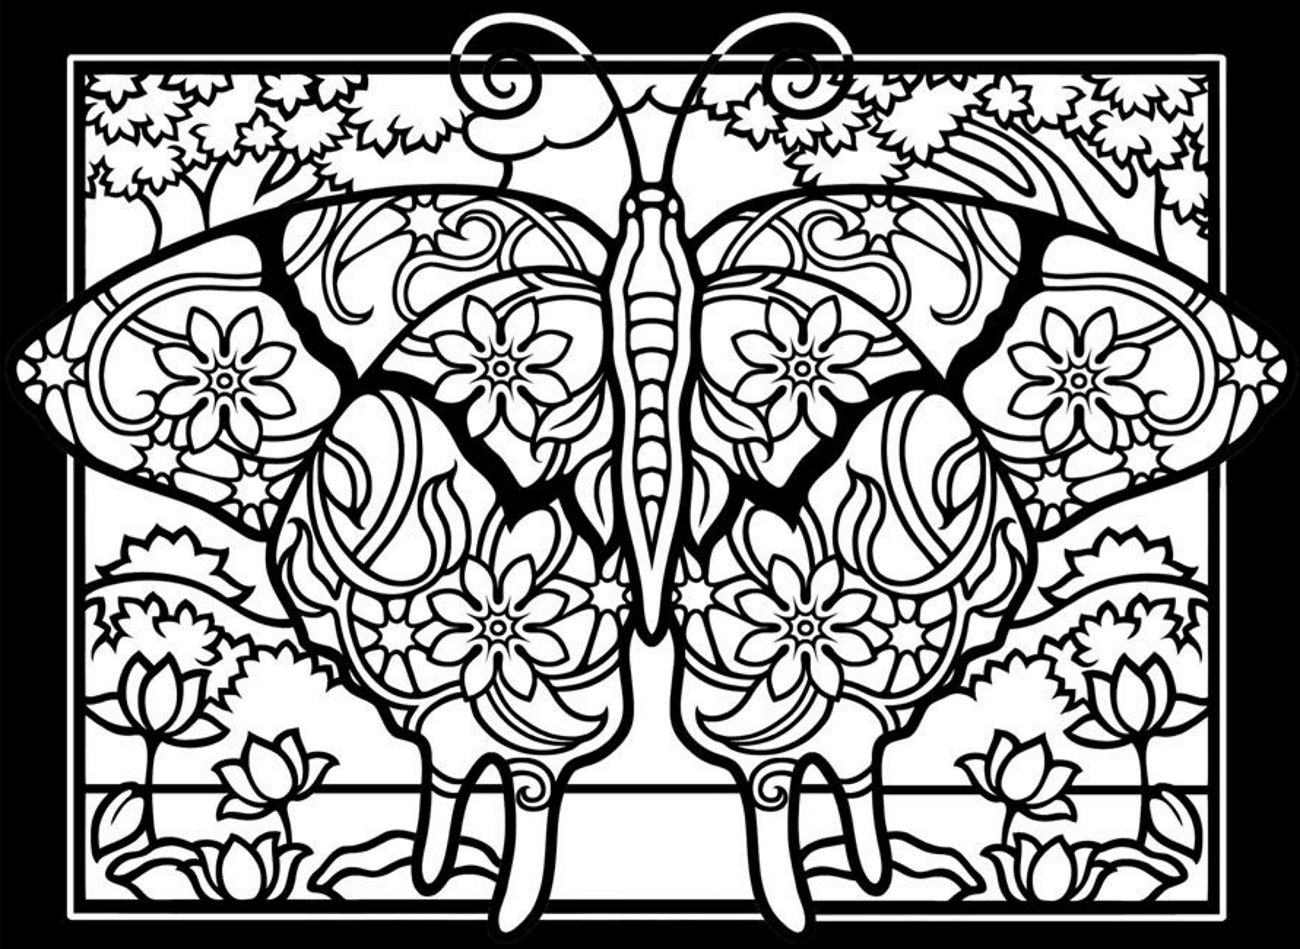 Butterfly coloring page symmetry - Coloring Adult Difficult Butterflies Black Background Free To Print